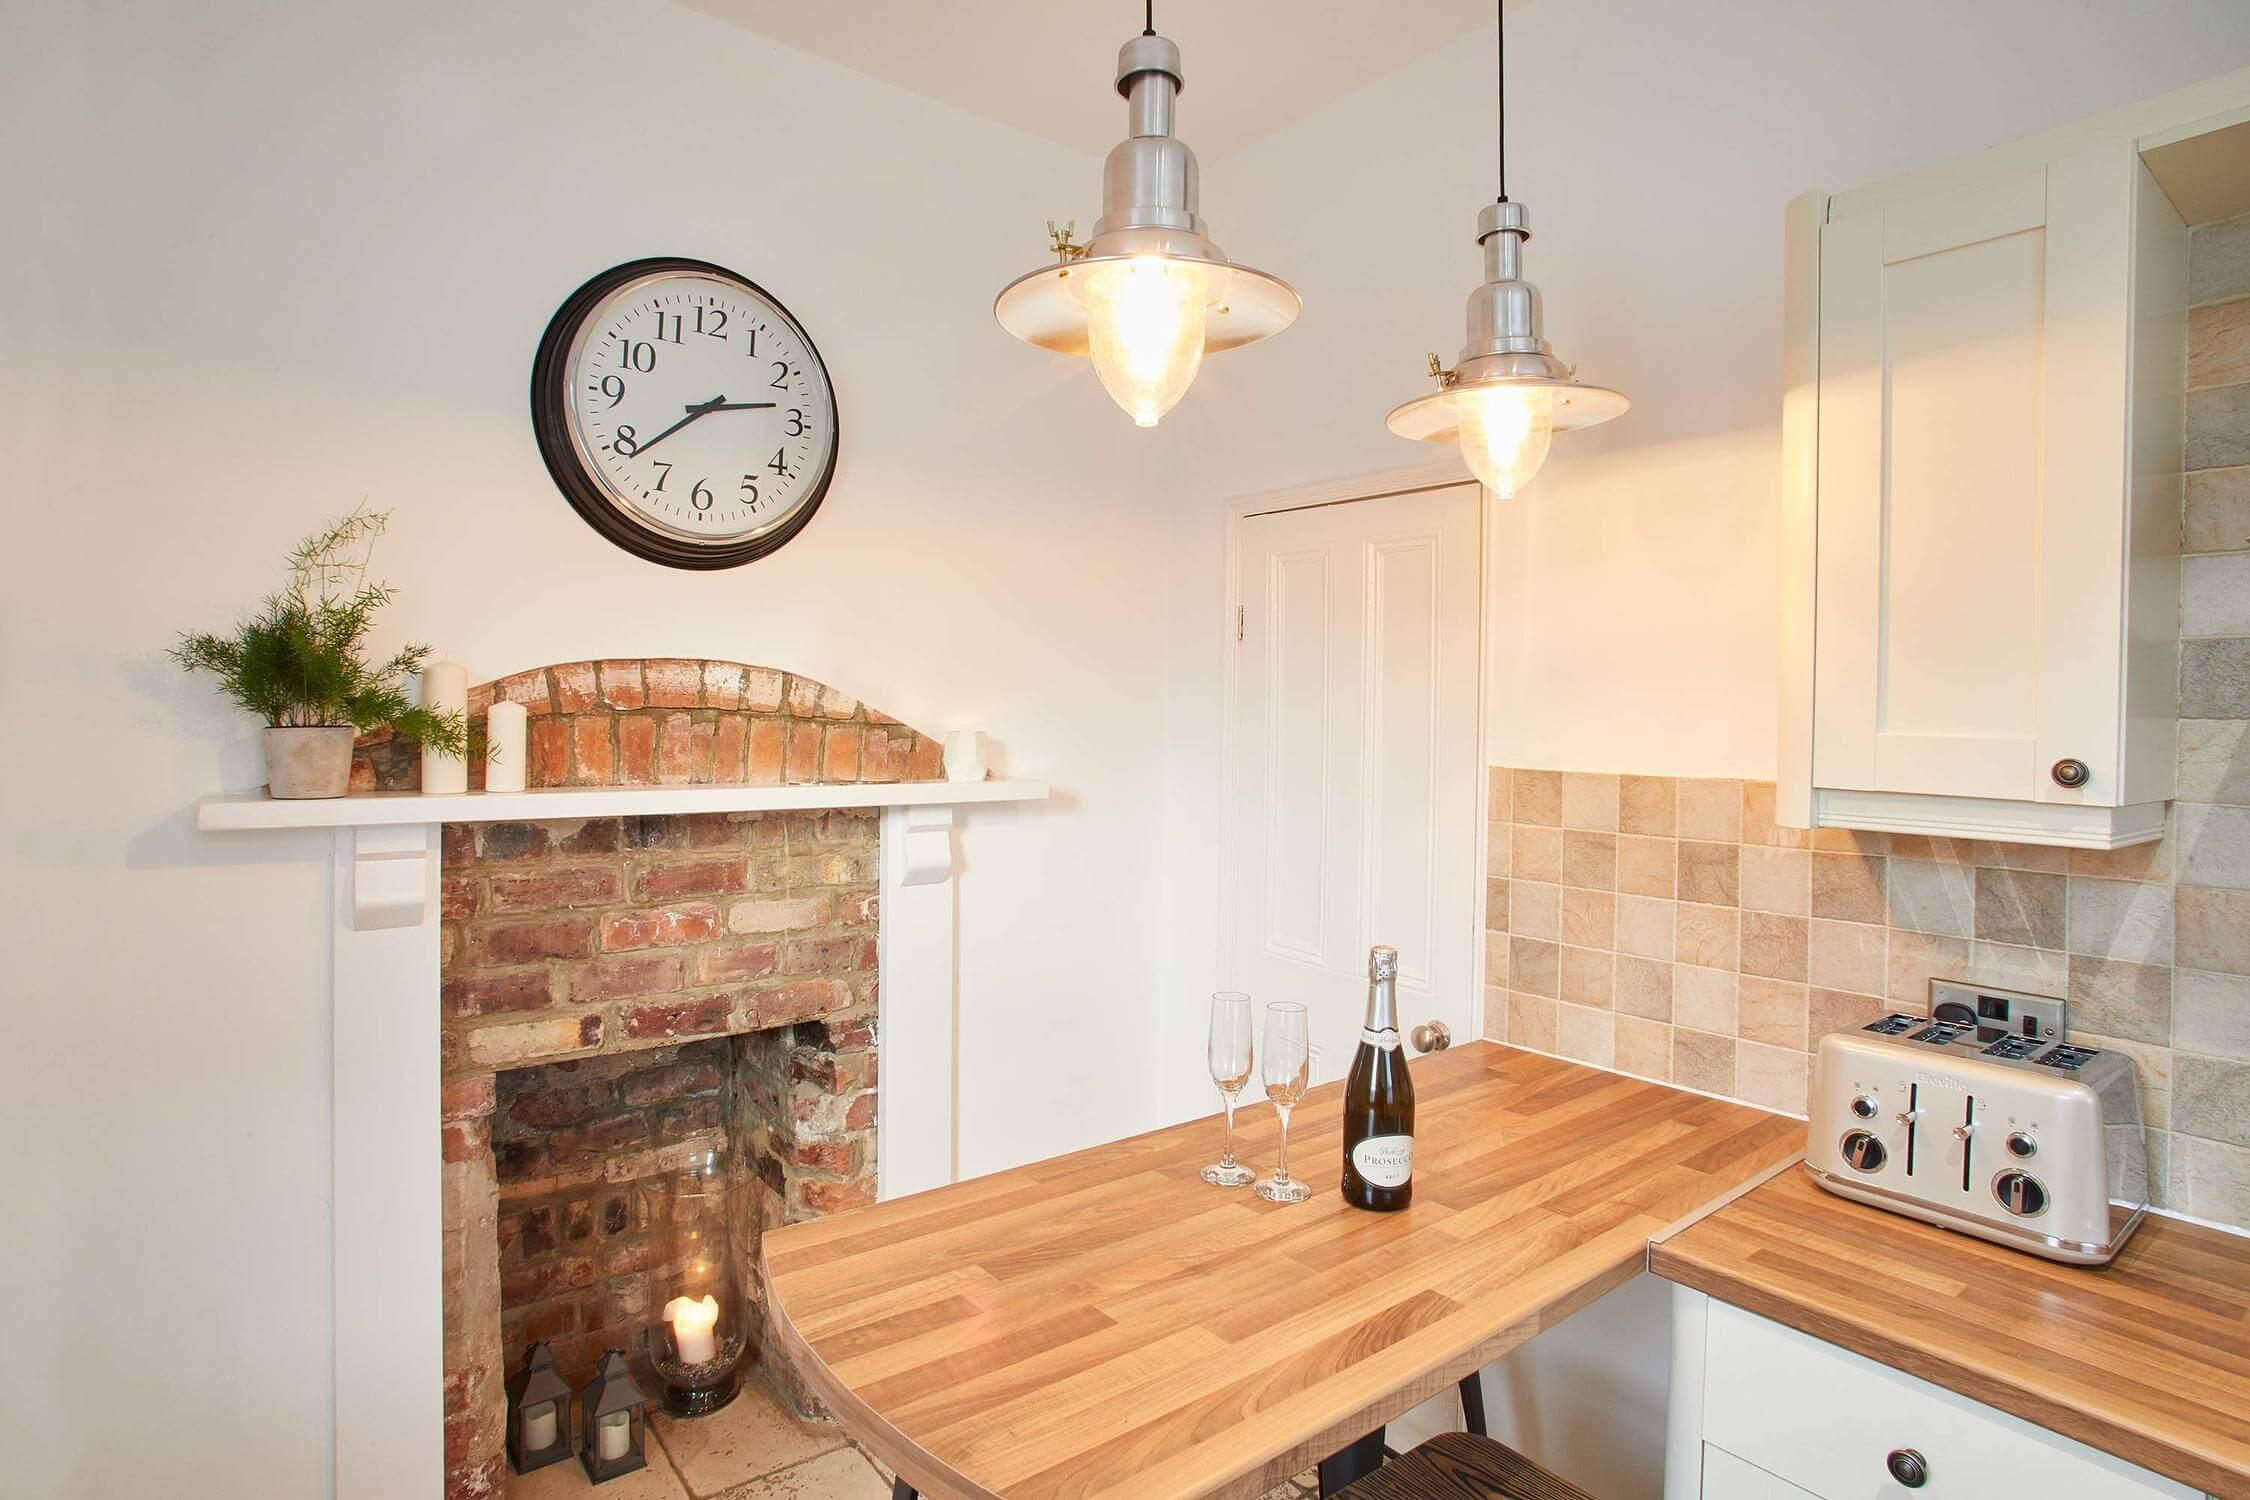 Property Image 2 - Stunning Dog Friendly Cottage in Saltburn-by-the-Sea